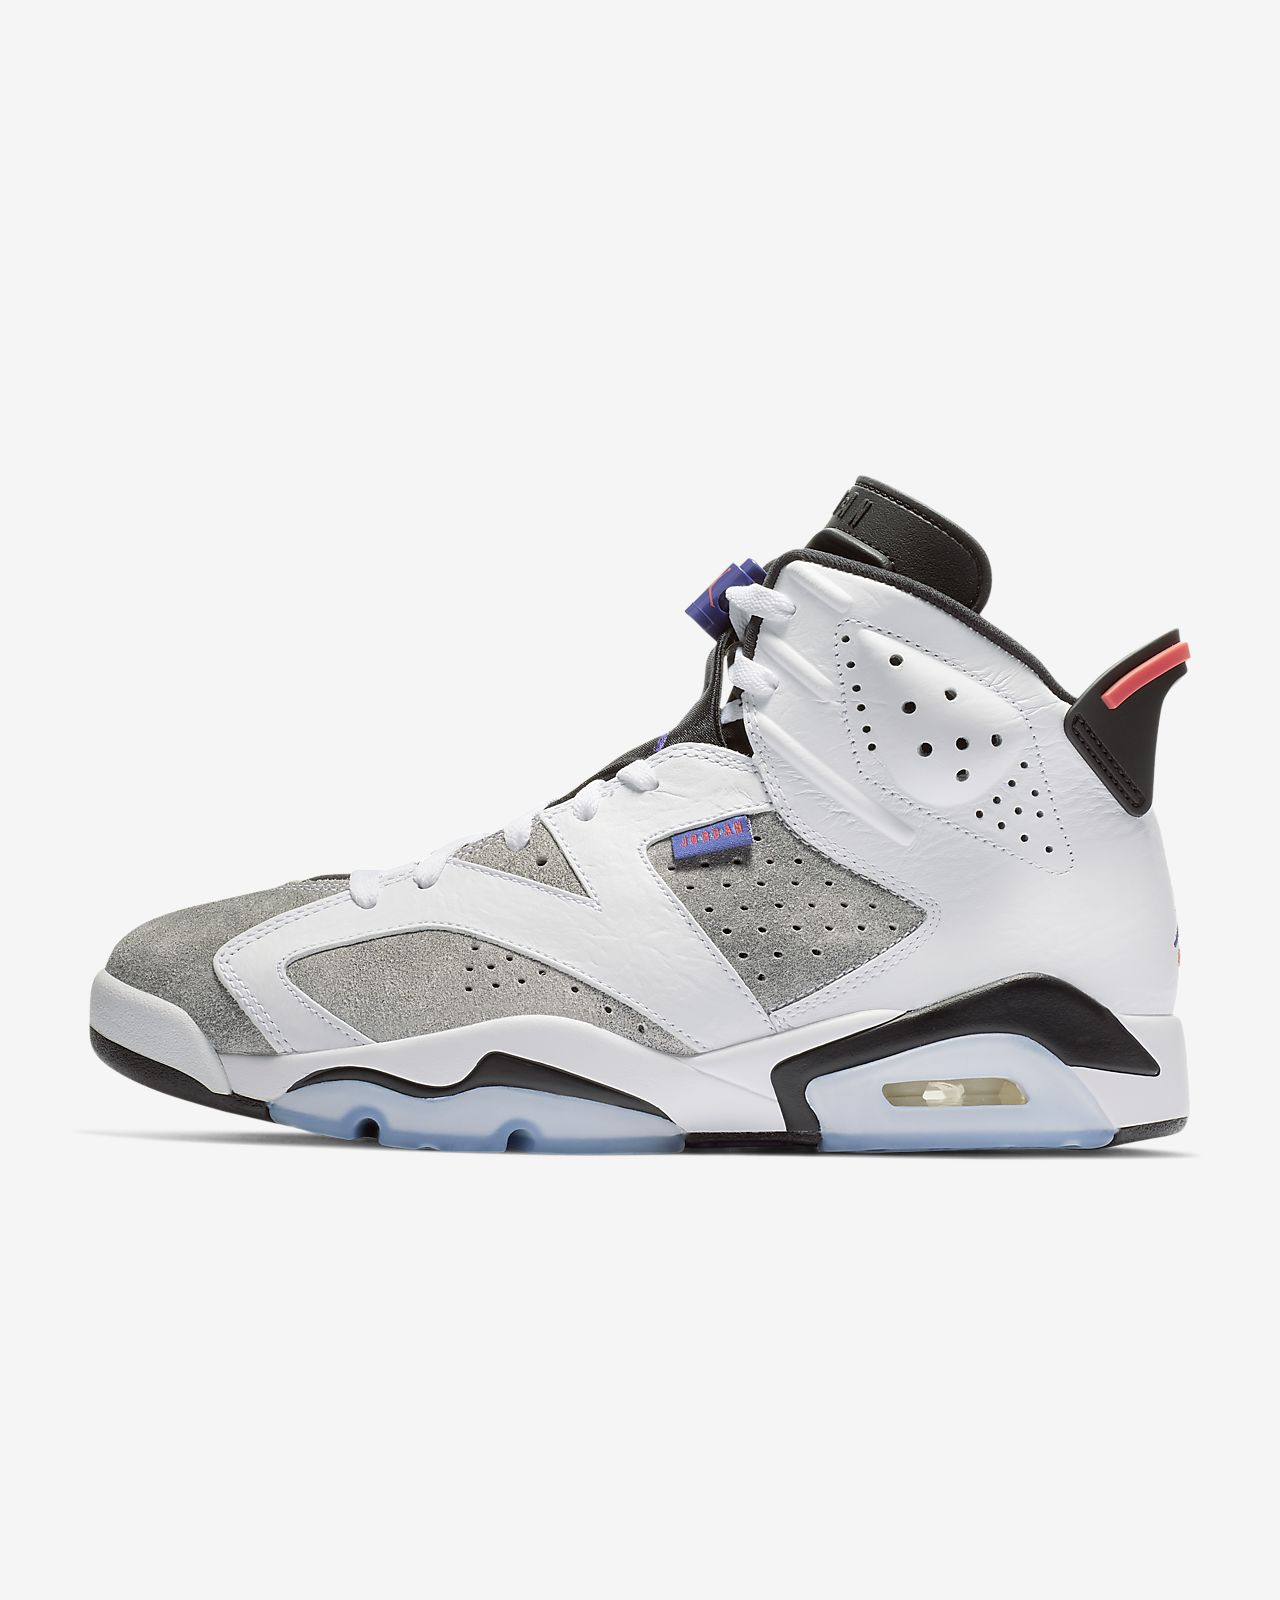 new arrival fa719 b3ca3 Men s Shoe. Air Jordan 6 Retro